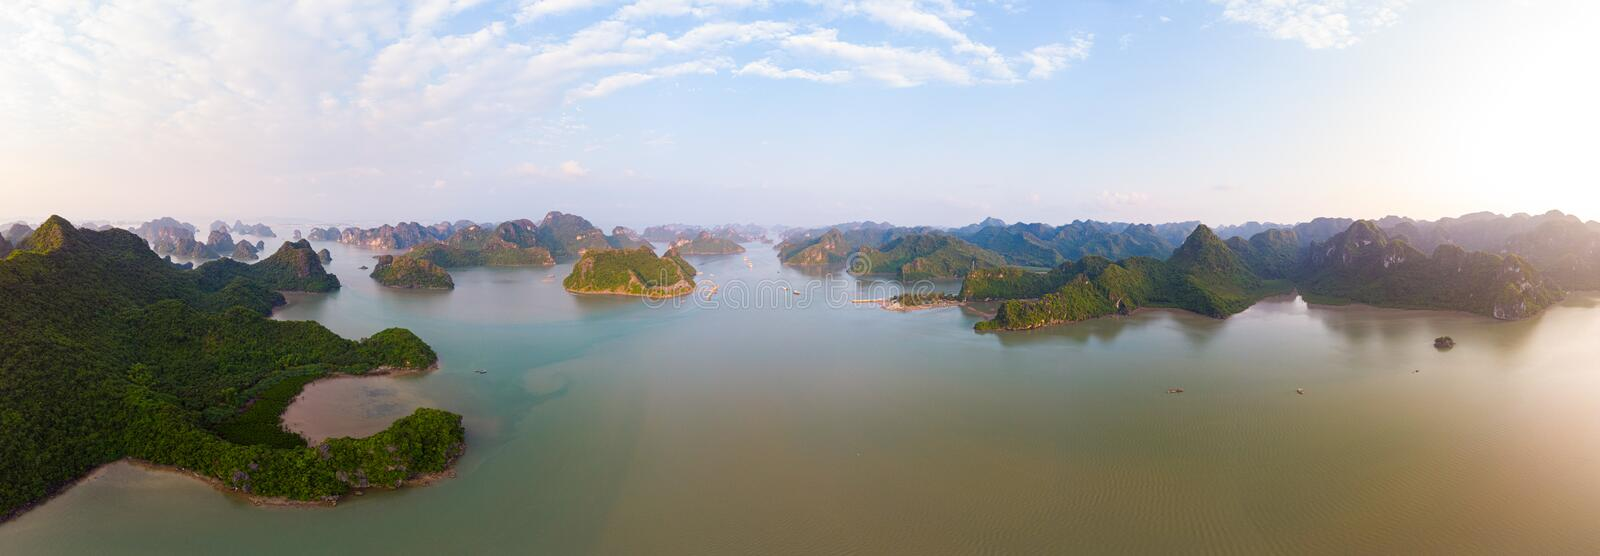 Aerial view of Ha Long Bay Cat Ba island, unique limestone rock islands and karst formation peaks in the sea, famous tourism stock photo